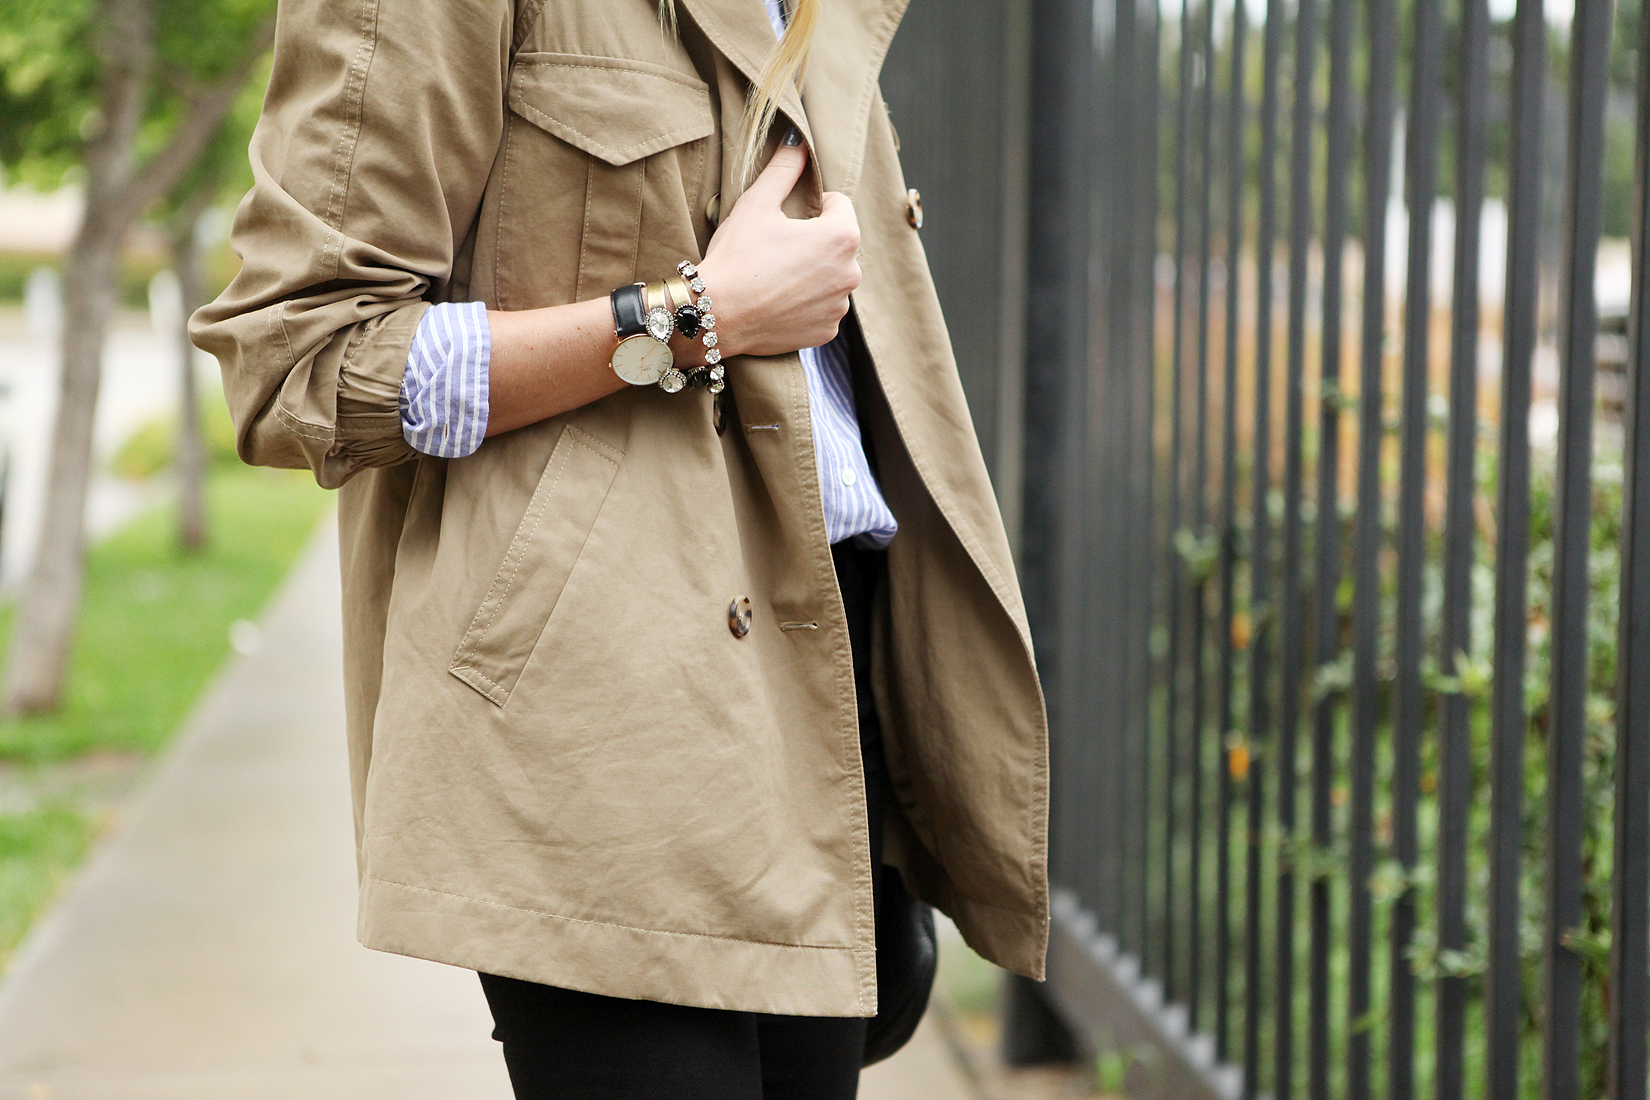 fashion-jackson-cargo-swing-trench-loren-hope-bracelets-daniel-wellington-watch